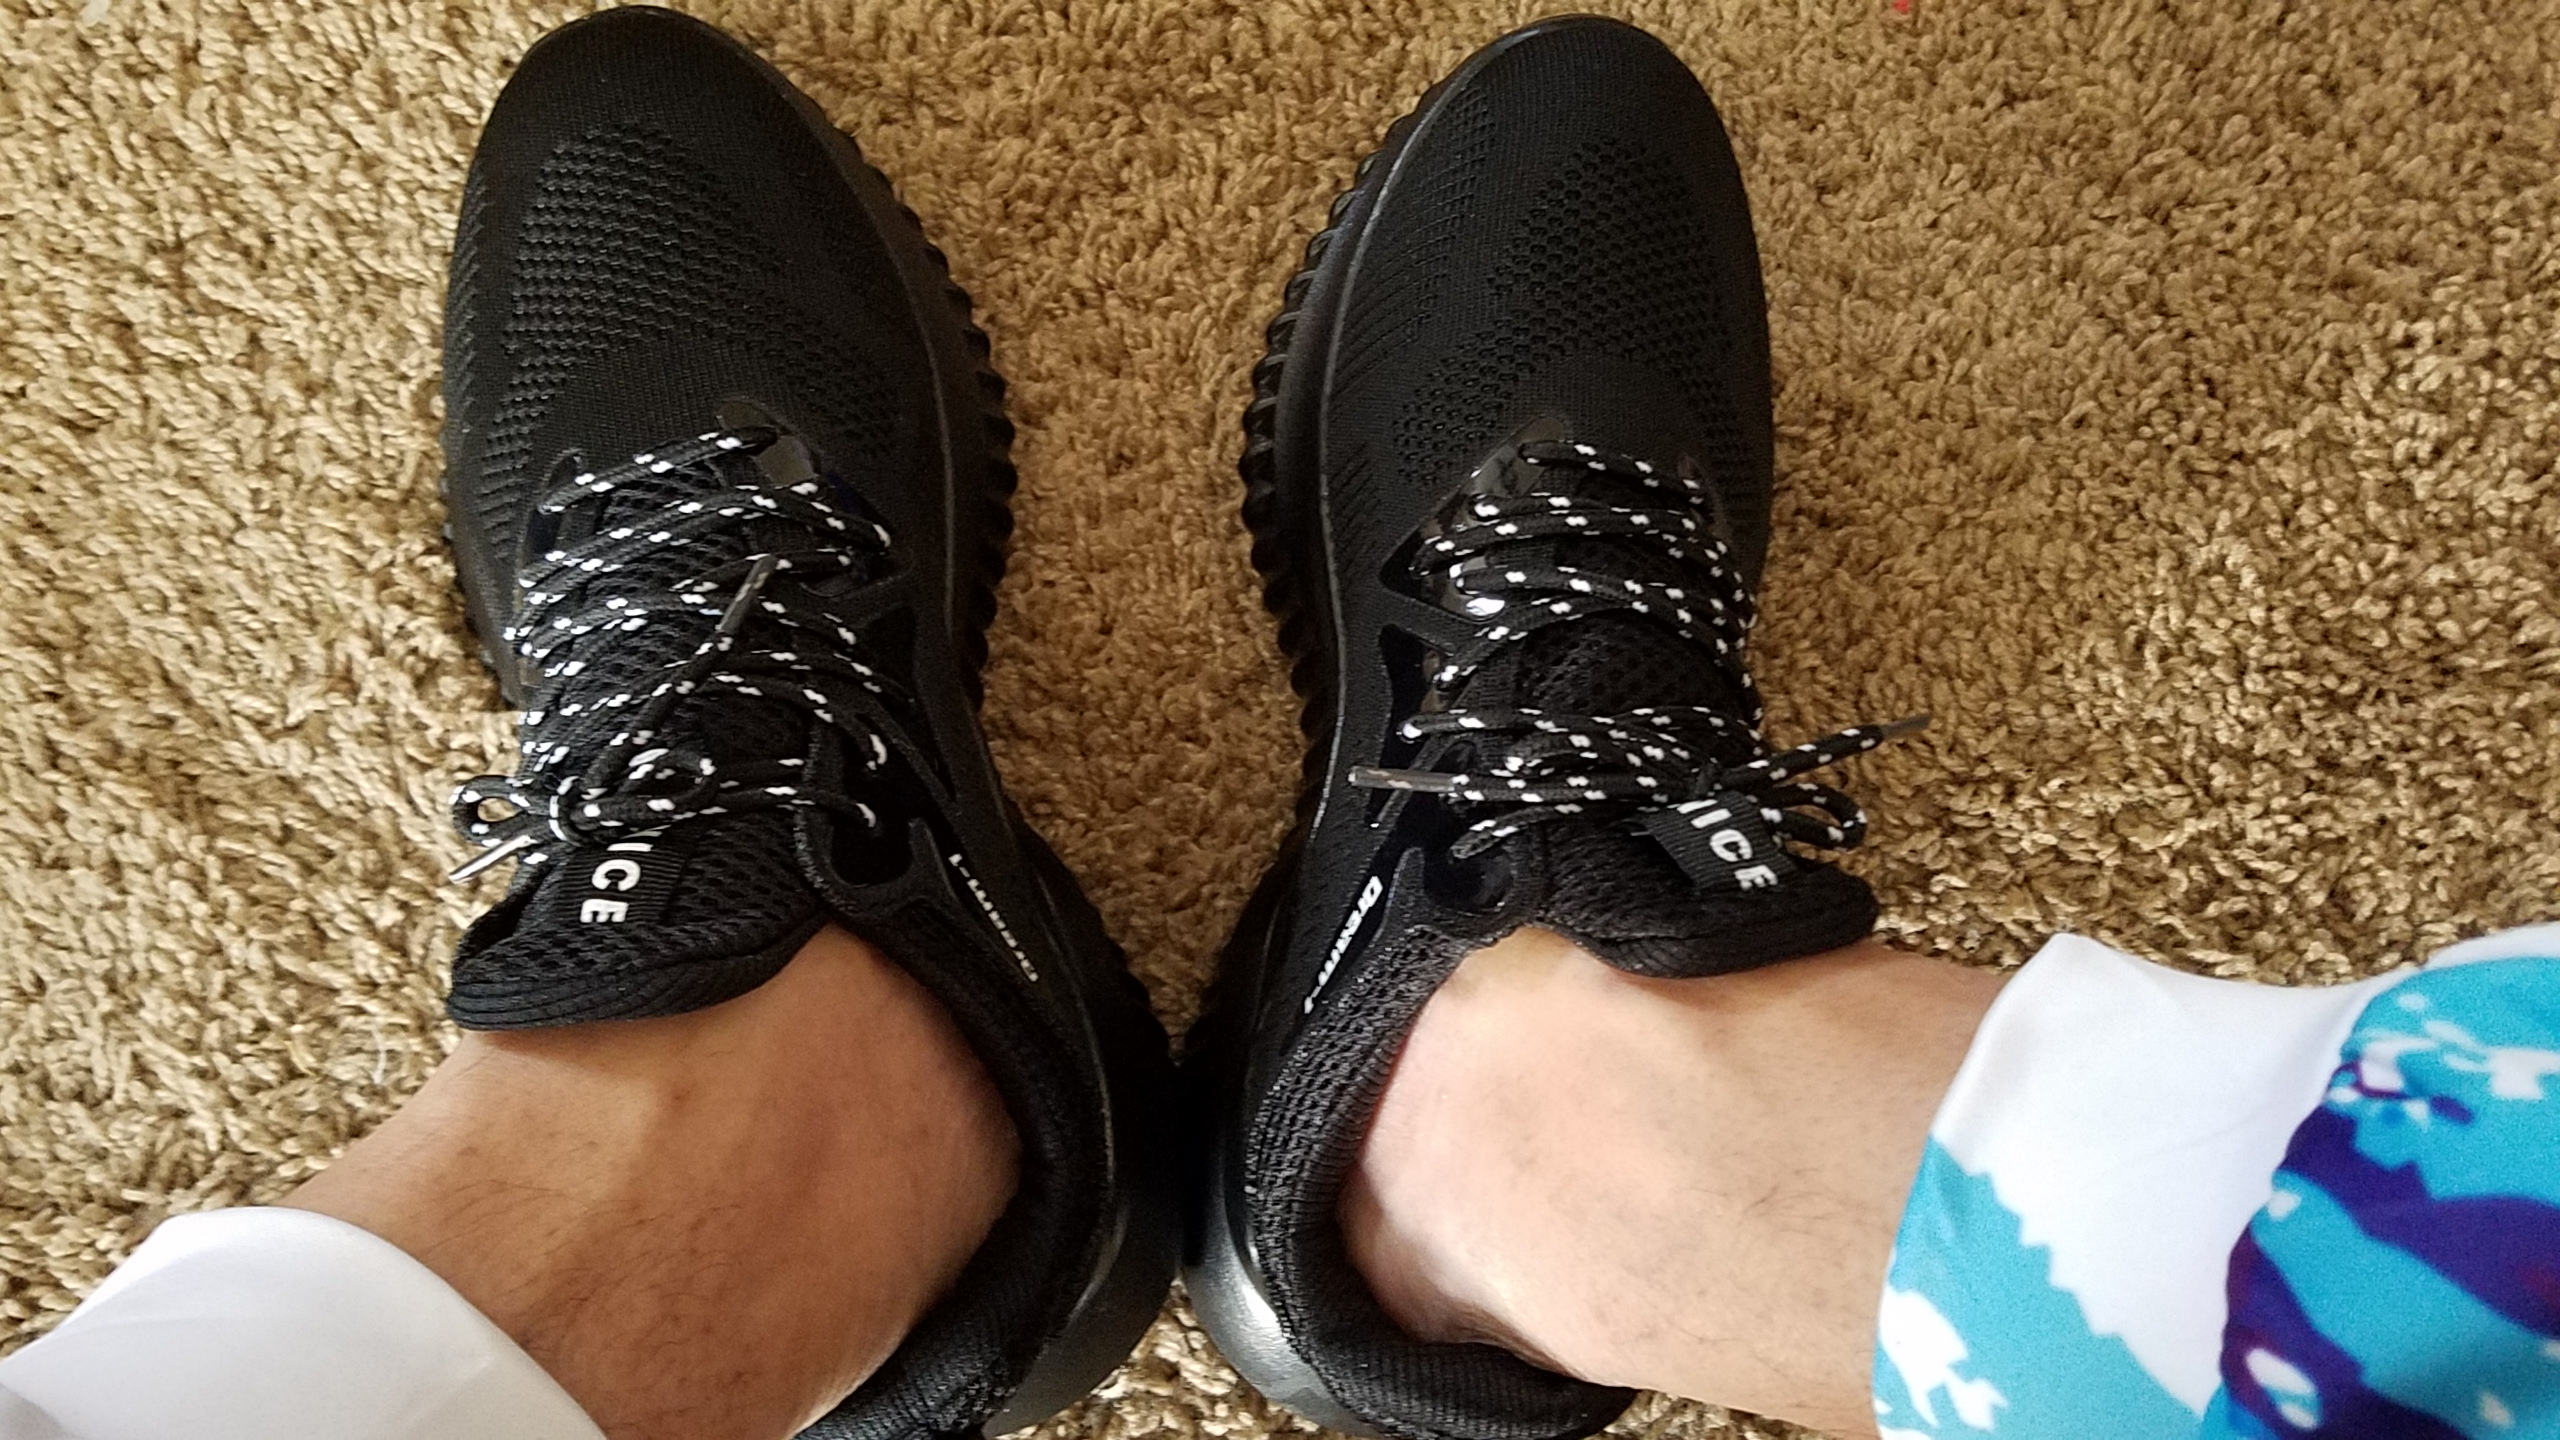 Very comfortable and light shoes, but the sole feels kind of stiff.